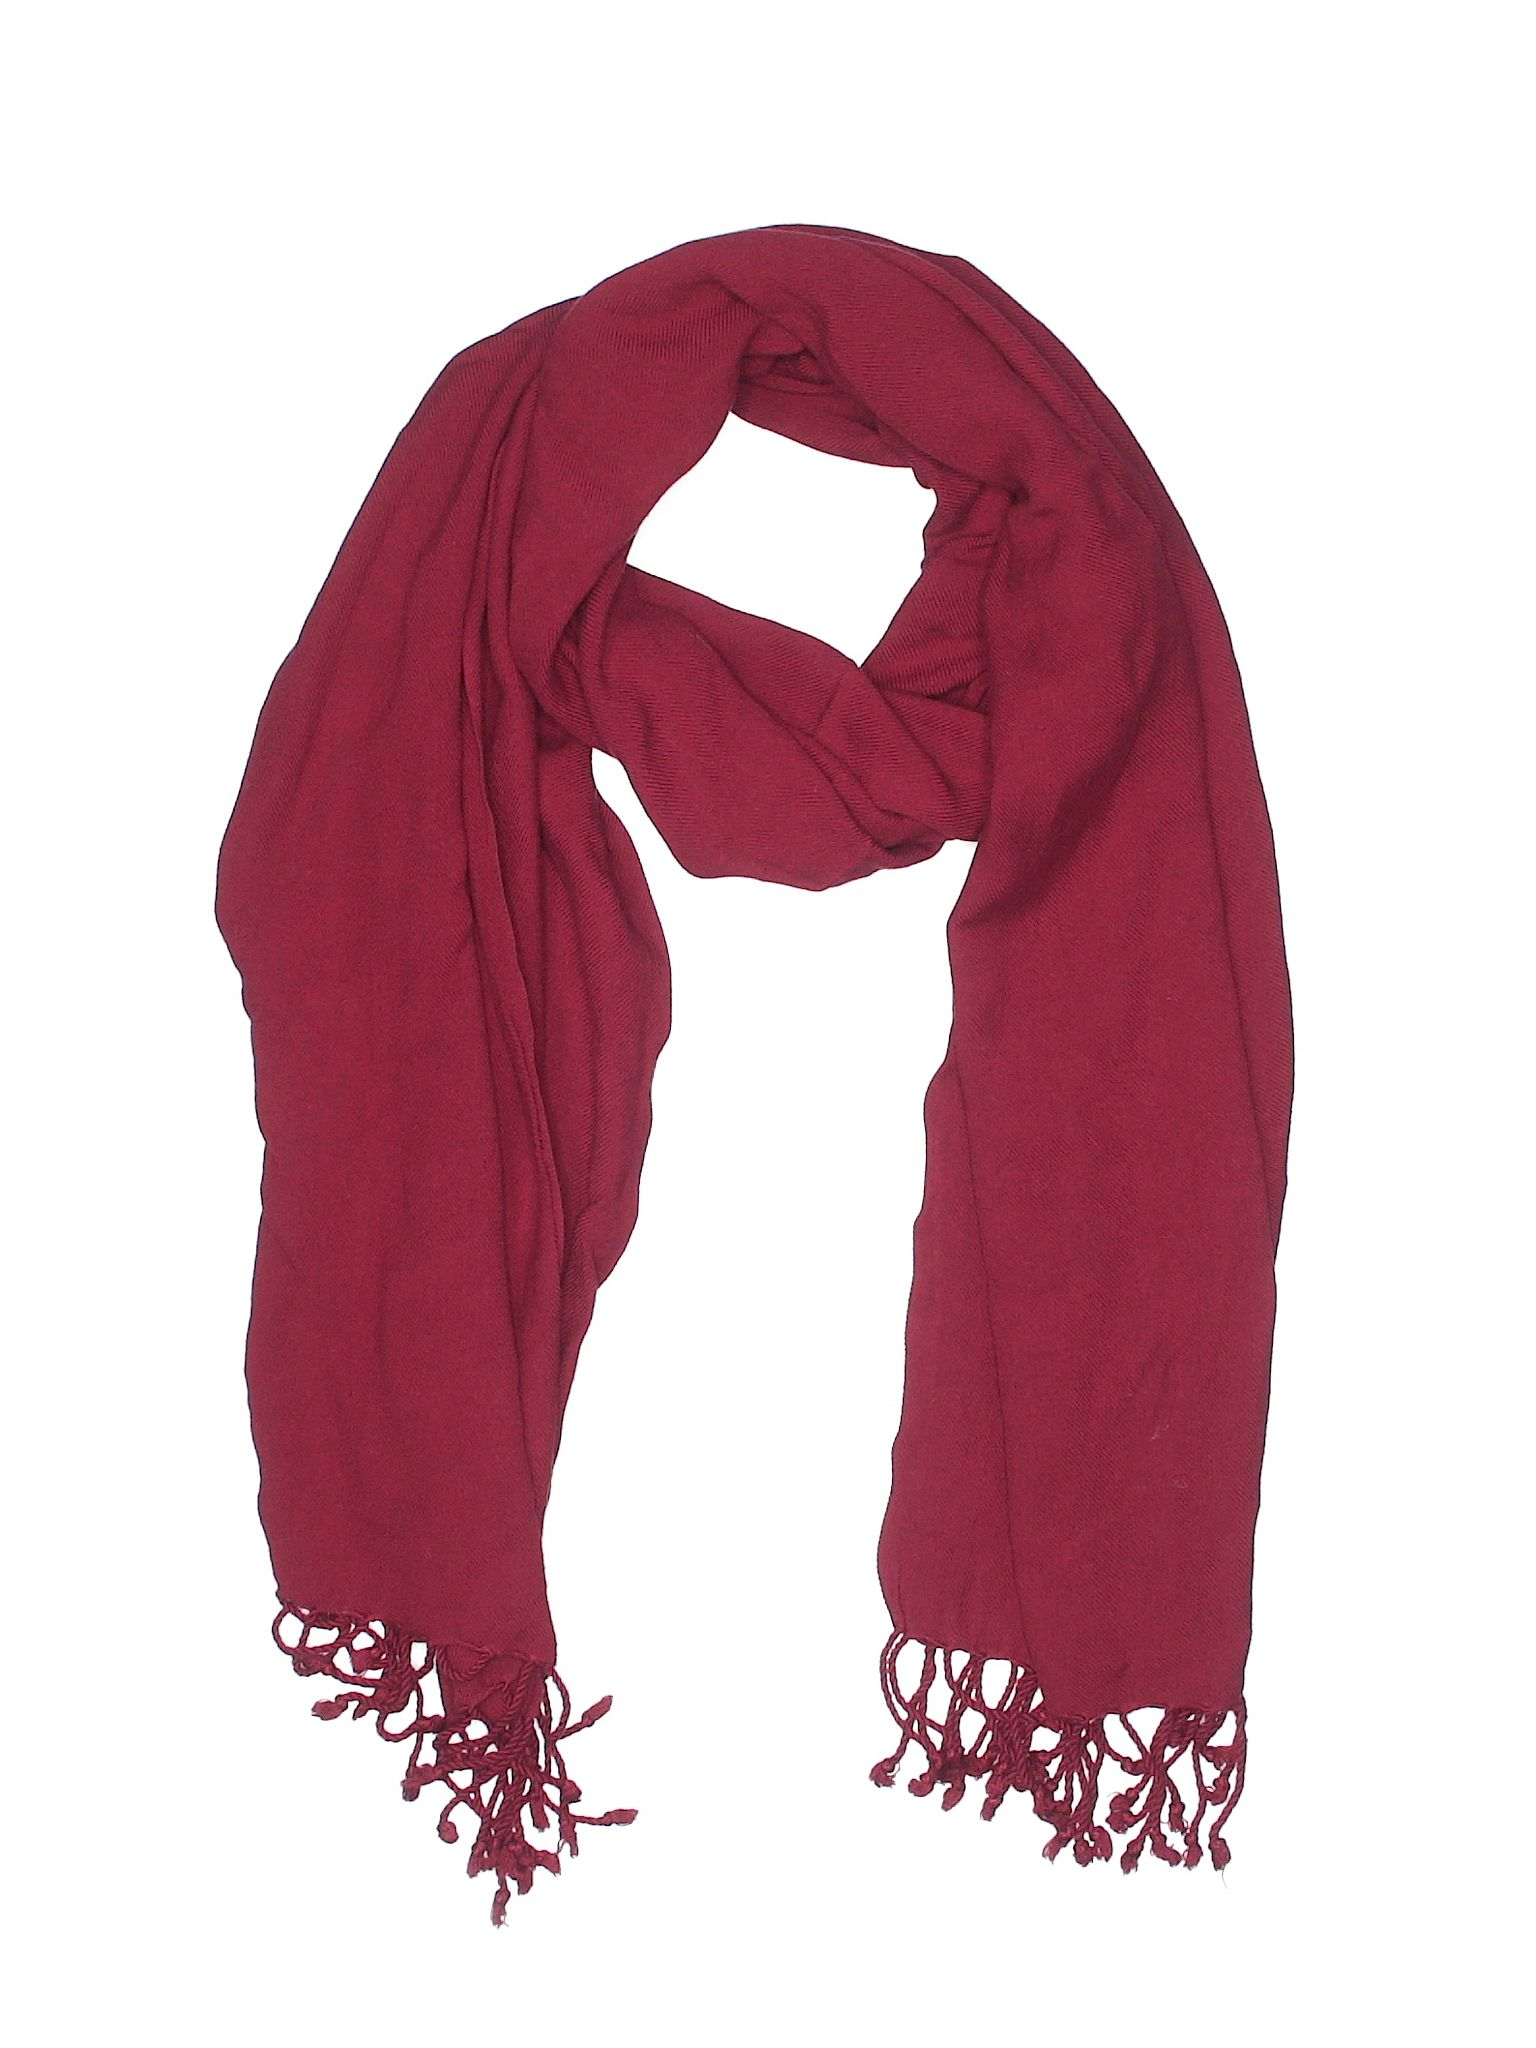 Unbranded Accessories Scarf Red Womens Accessories  28315259